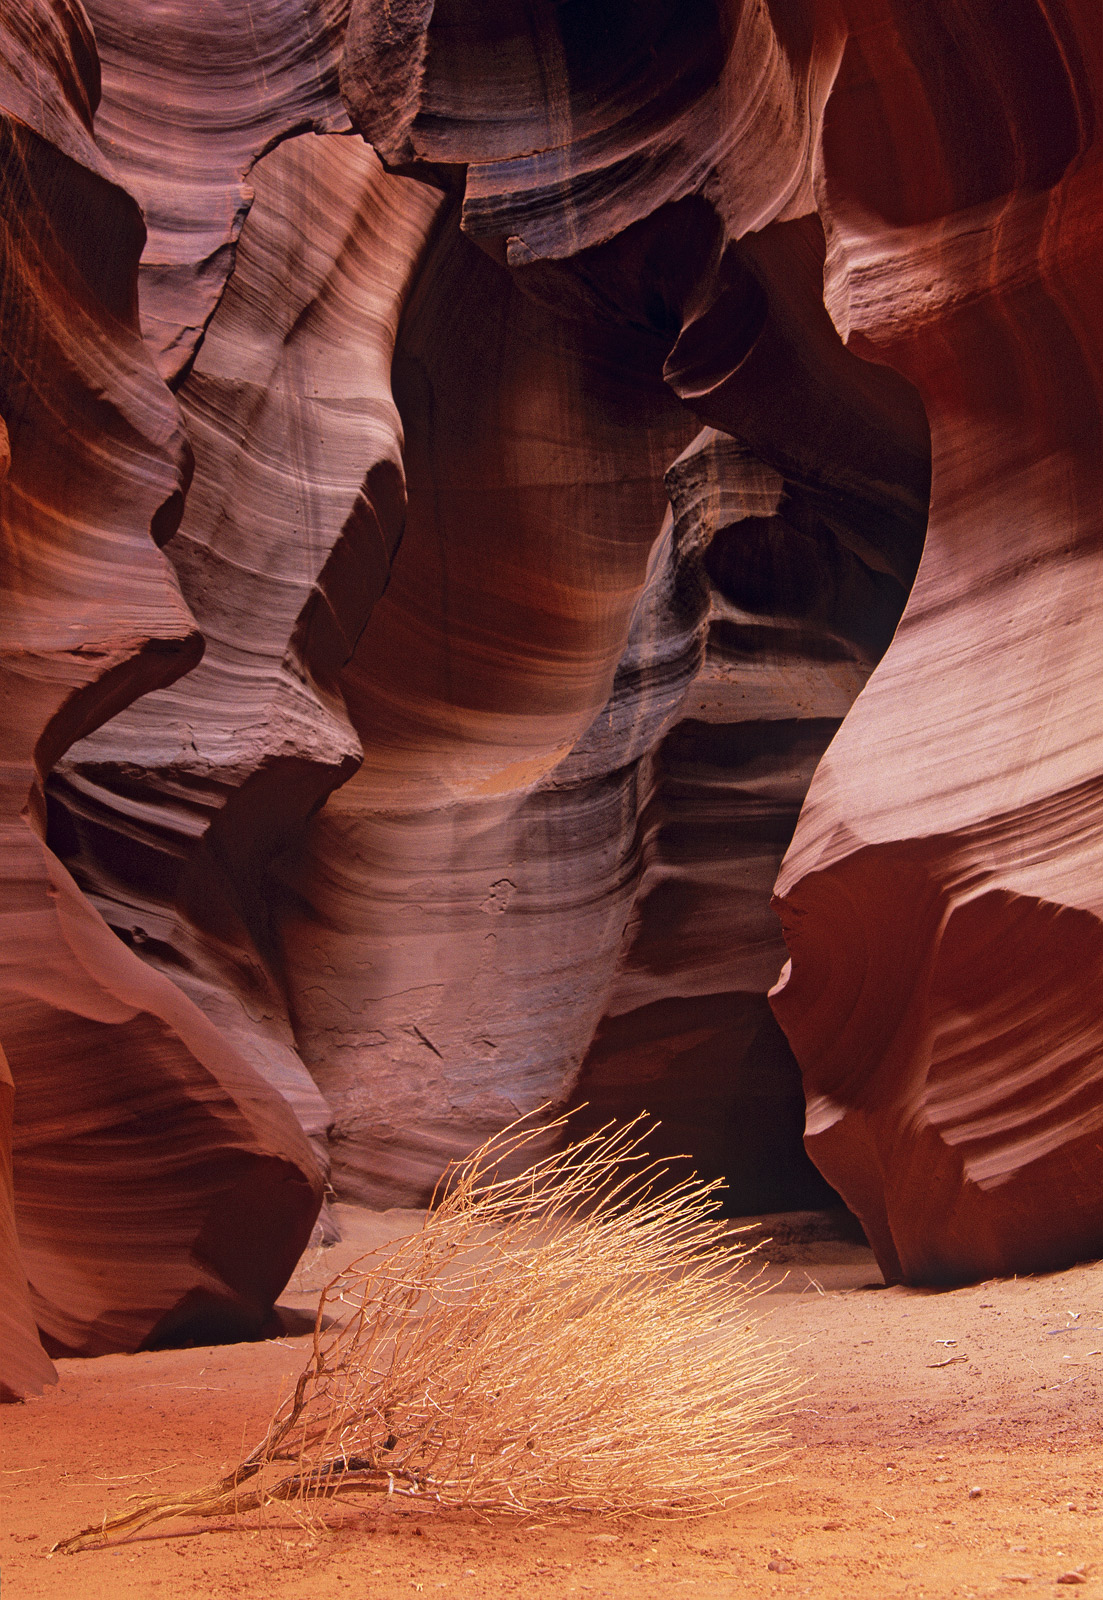 The beautiful sculpted corridors of twisted red sandstone are world famous. They are known as slot canyons. A narrow fissure...